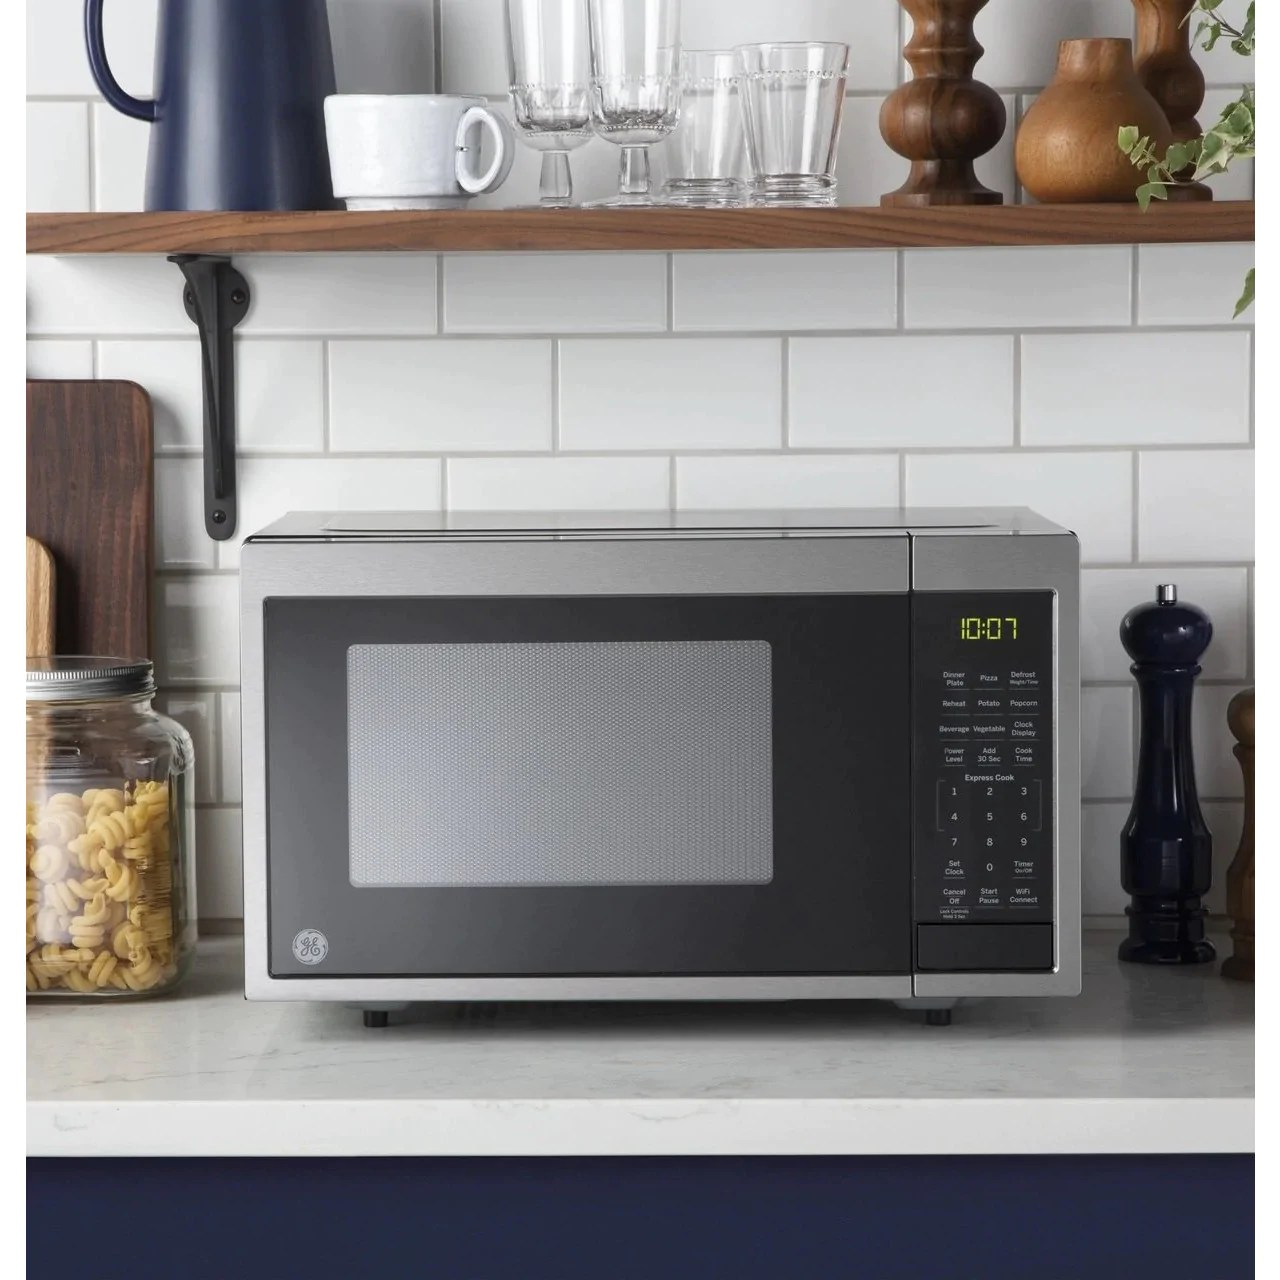 ge 0 9 cu ft capacity smart countertop microwave oven with scan to cook technology